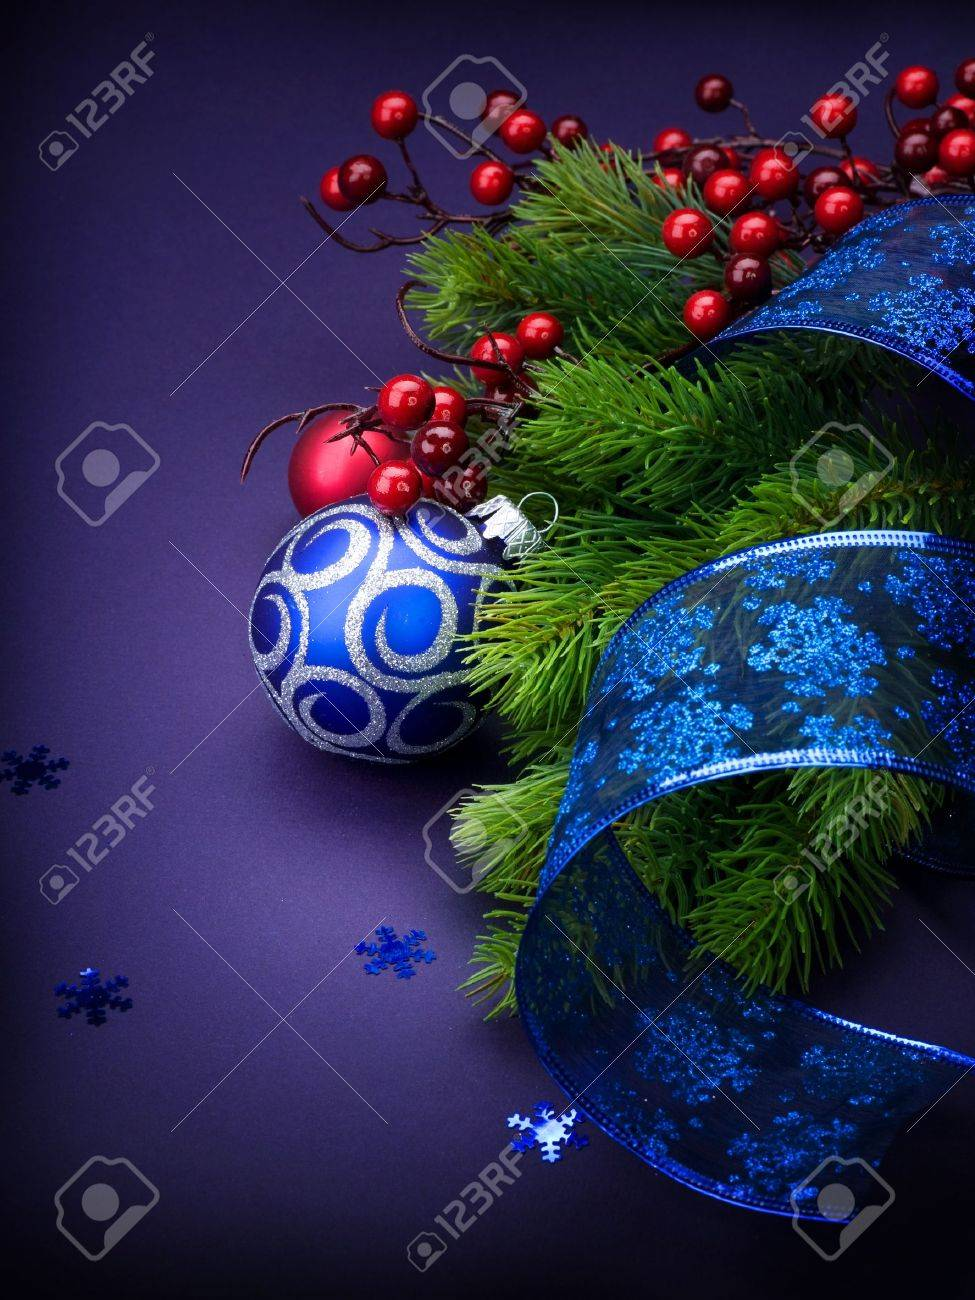 Christmas and New Year Decoration Stock Photo - 9358075